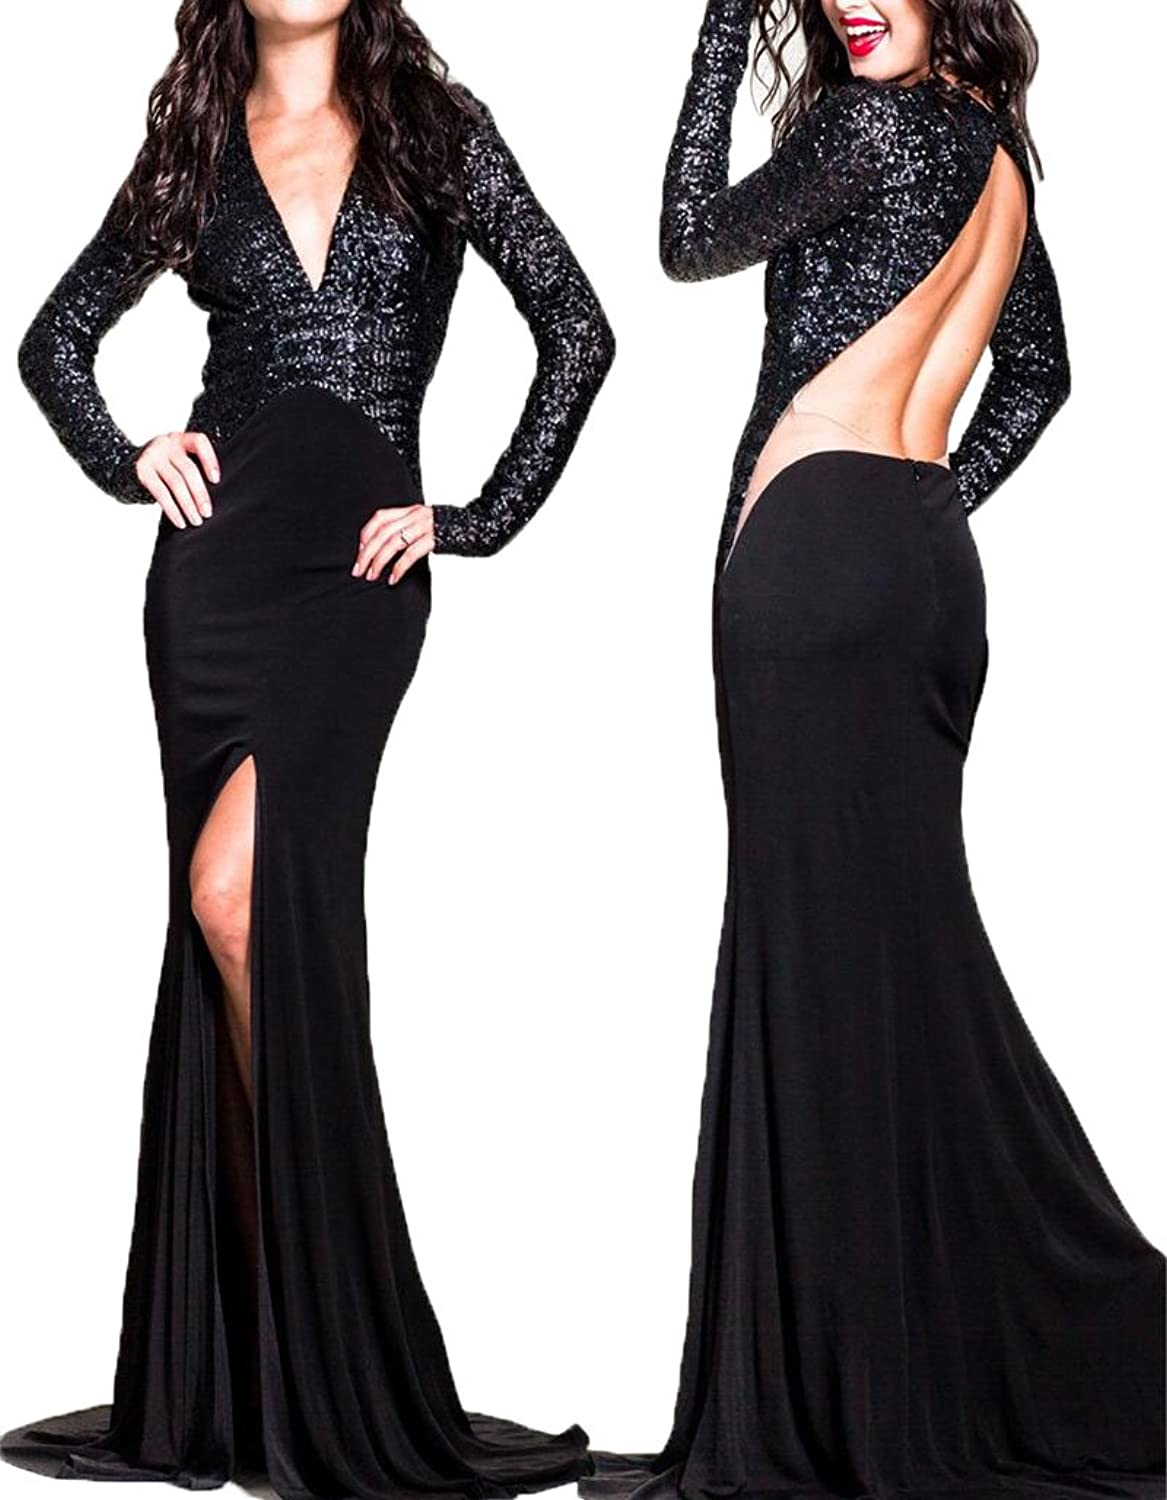 Ellenhouse Women's Sequined Long Sleeve Evening Dress Backless Prom Gowns EL092